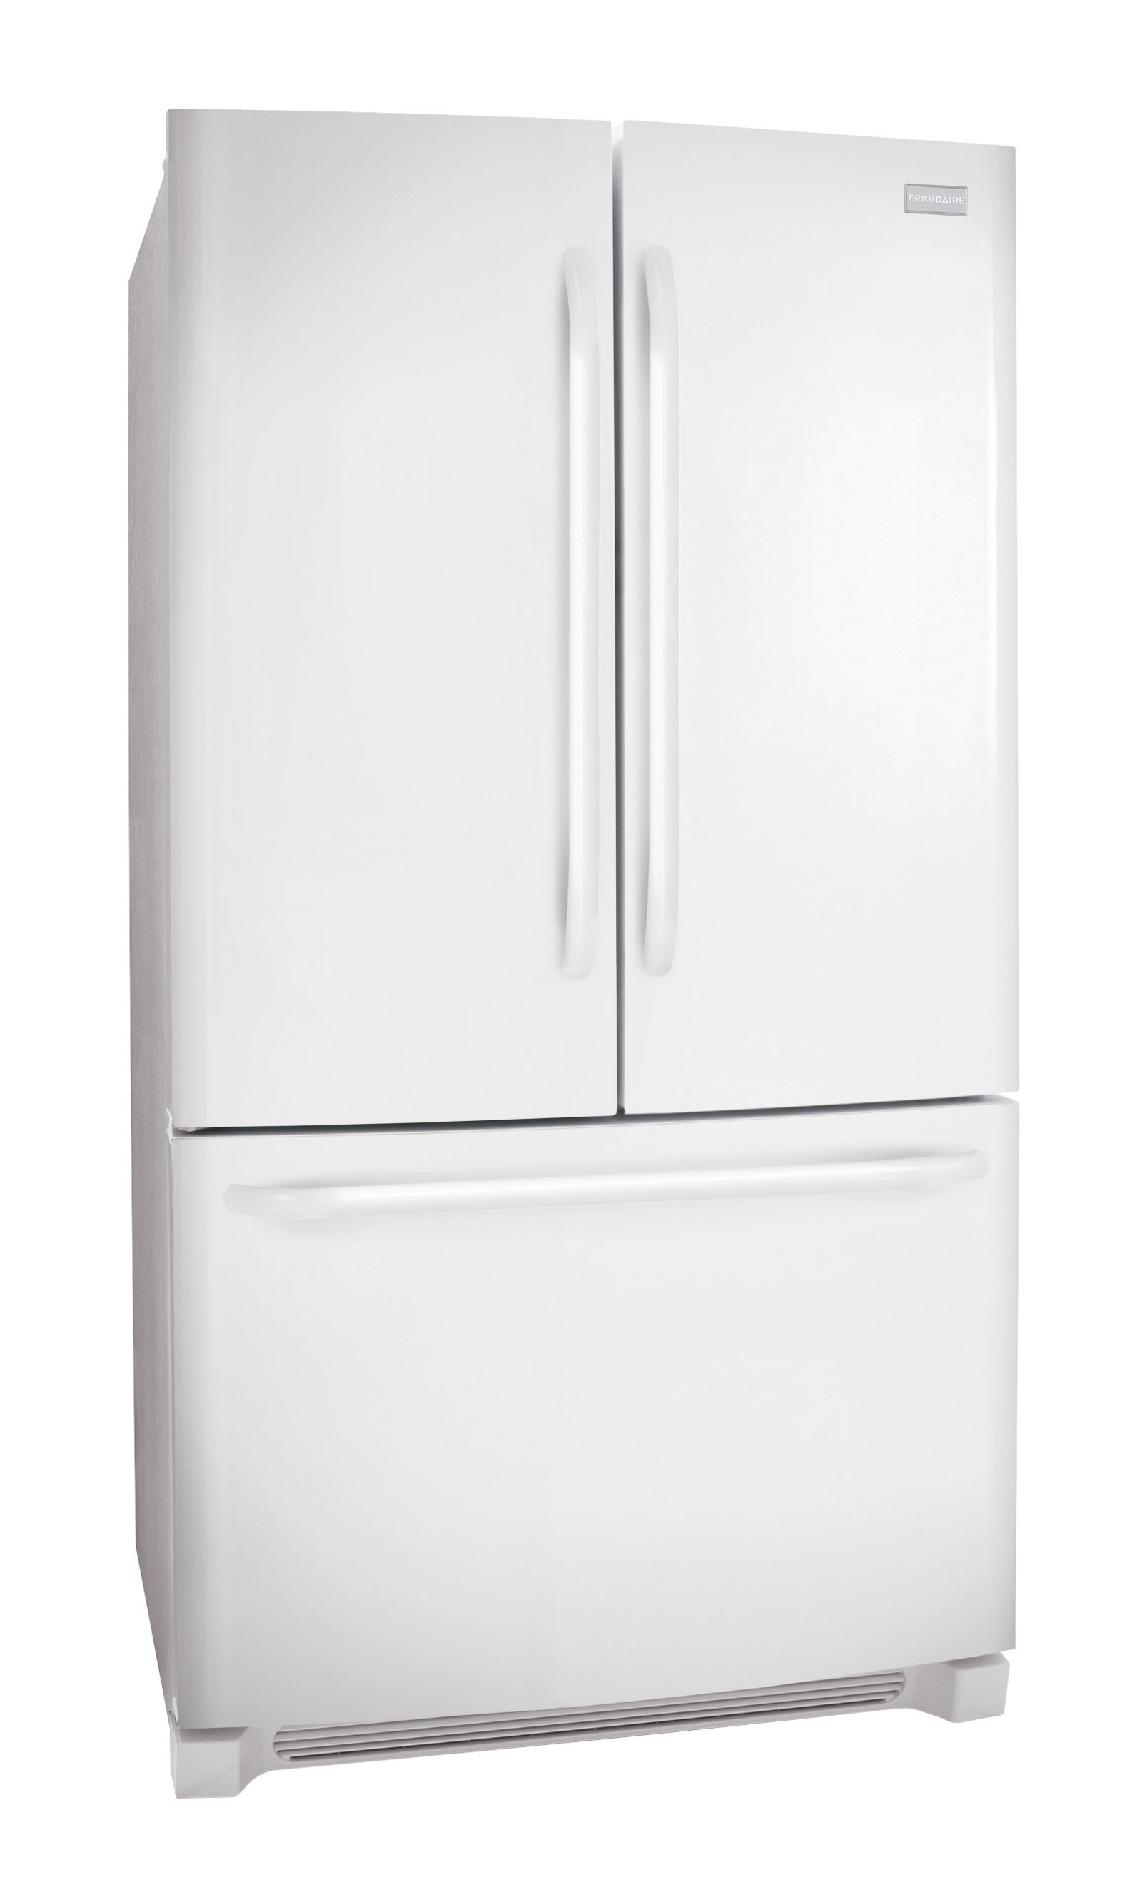 Frigidaire FFHN2740PP 26.6 cu. ft. French Door Refrigerator - Pearl White